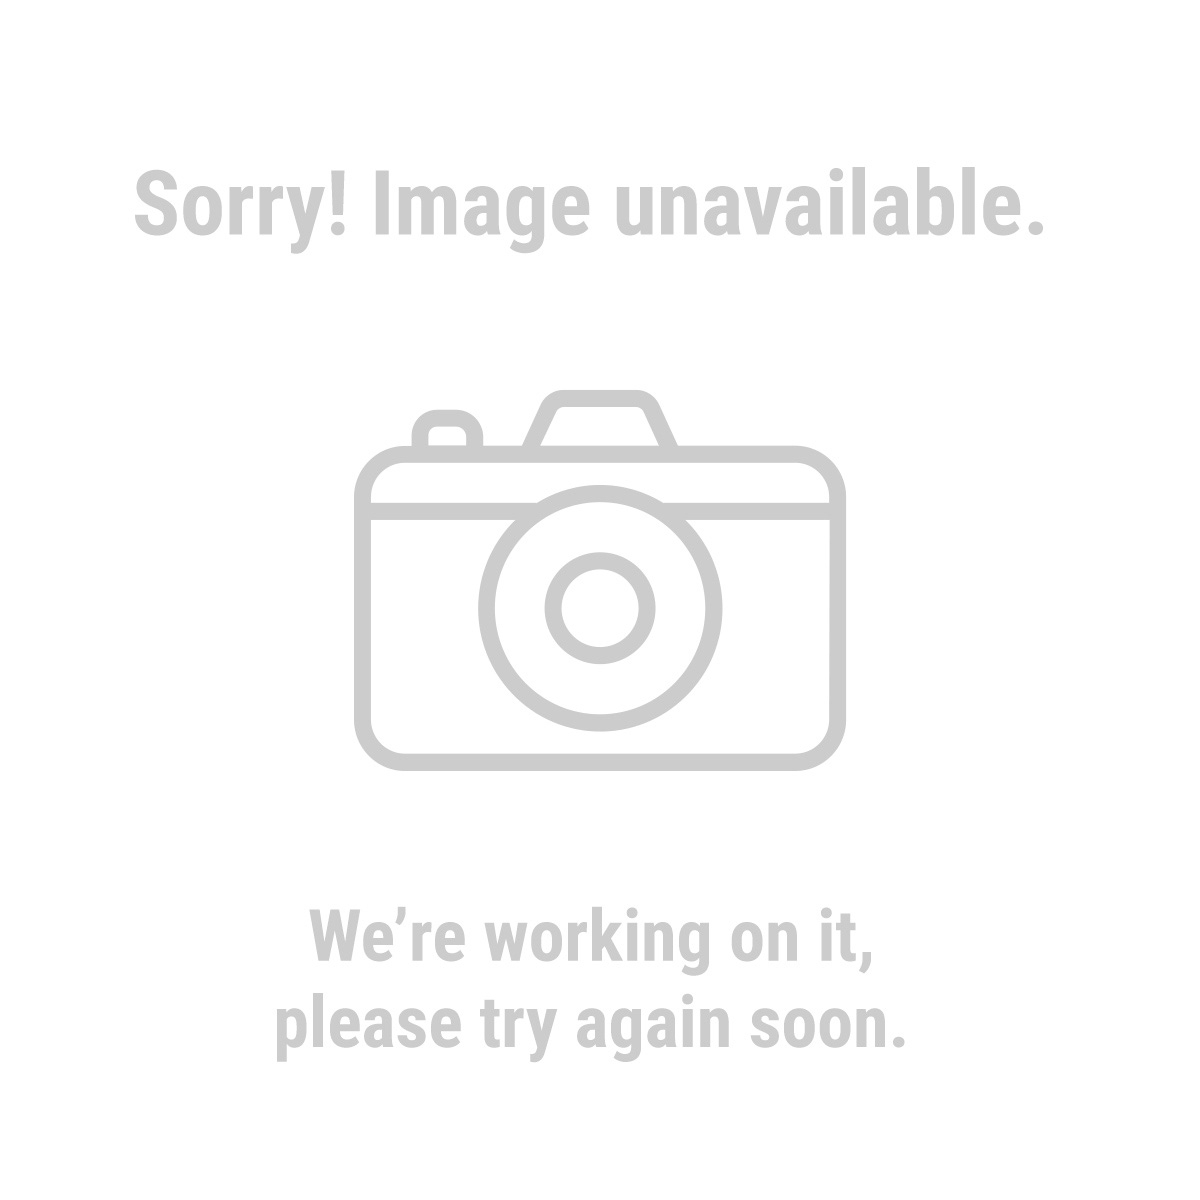 22 Piece Screwdriver Set